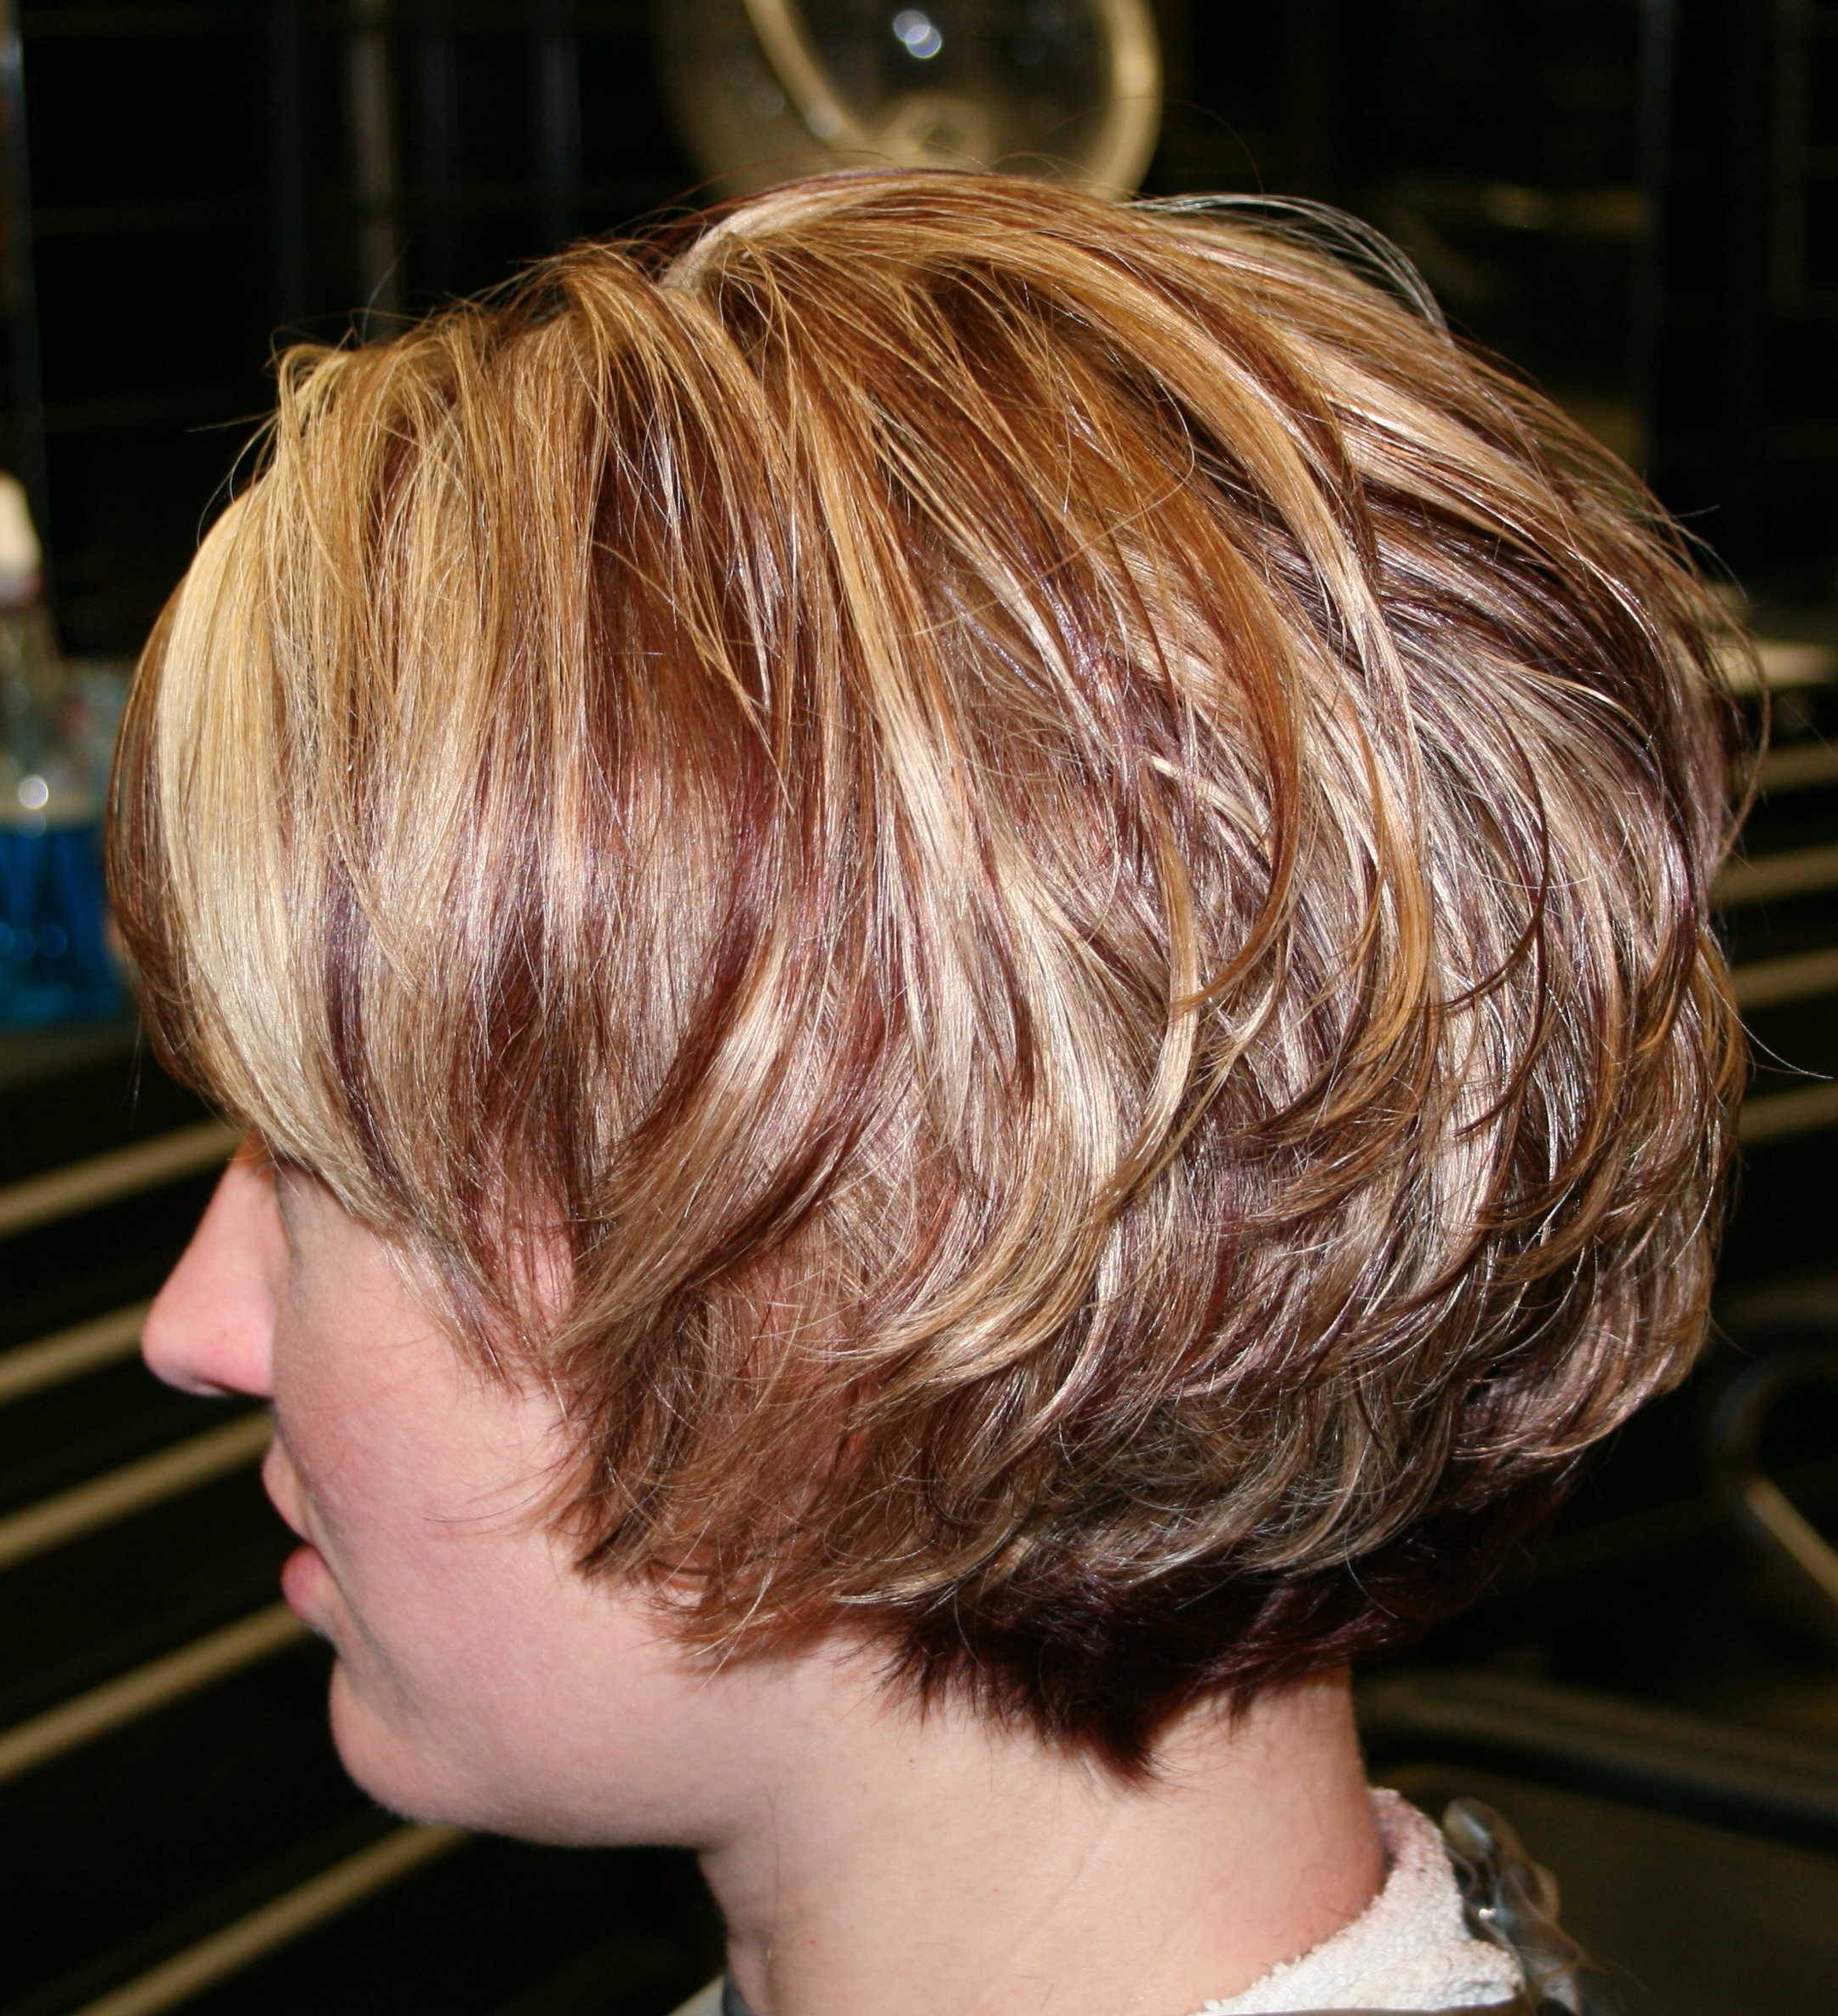 Short Layered Bob Hairstyles For Thick Hair – Hairstyle For Women & Man Inside Layered Tapered Pixie Hairstyles For Thick Hair (Gallery 18 of 20)